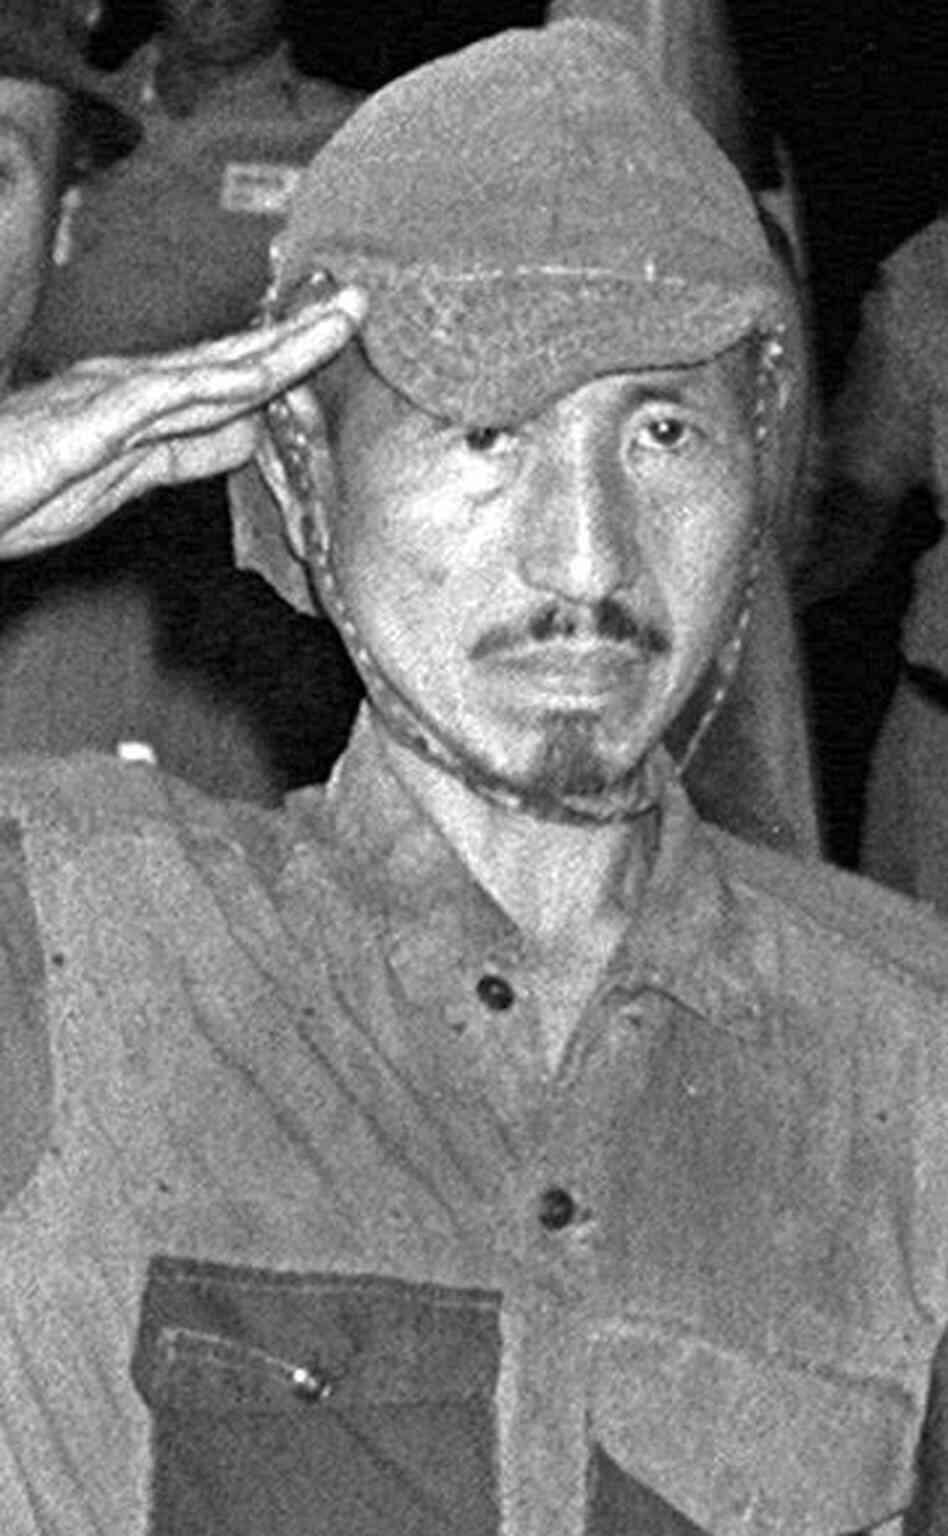 Hiroo Onoda, who wouldn't surrender for nearly three decades and continued to battle with villagers in the Phi